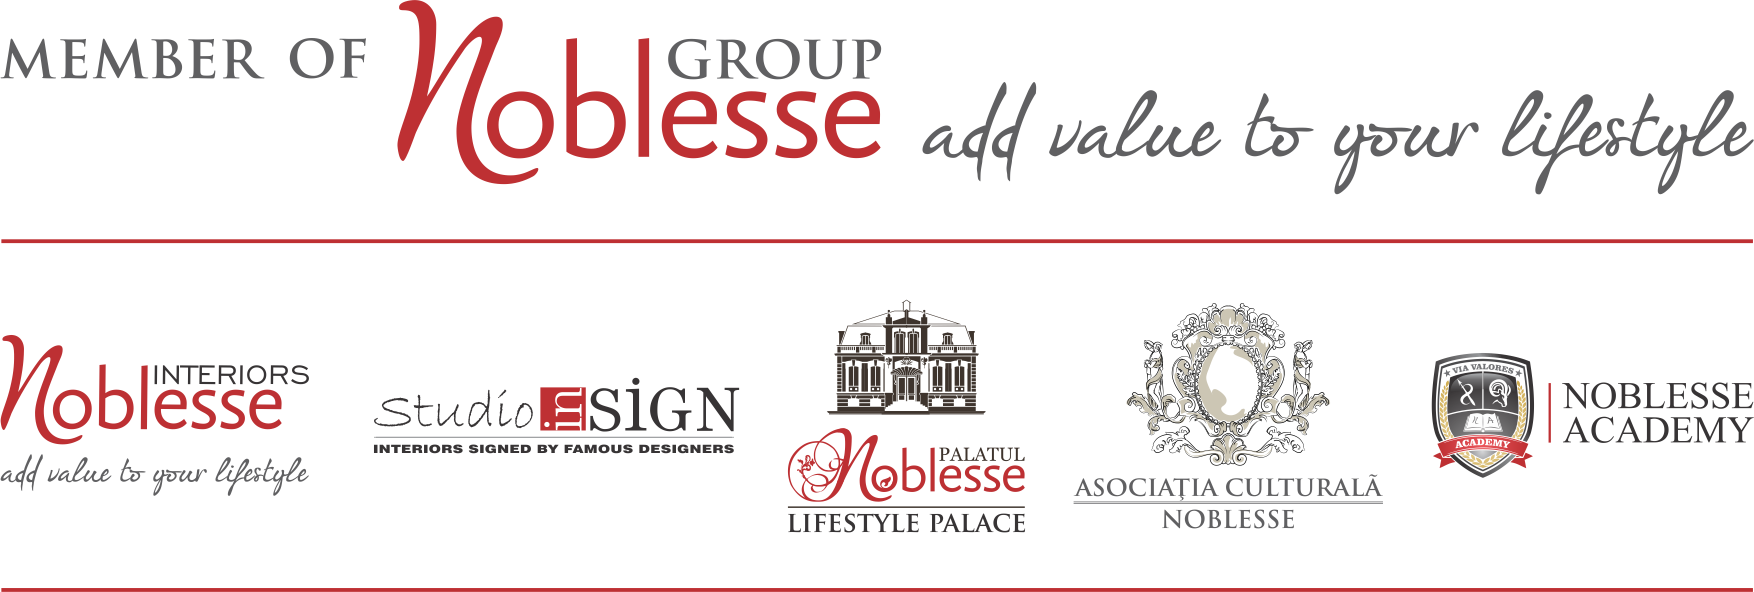 GROUP BRANDS